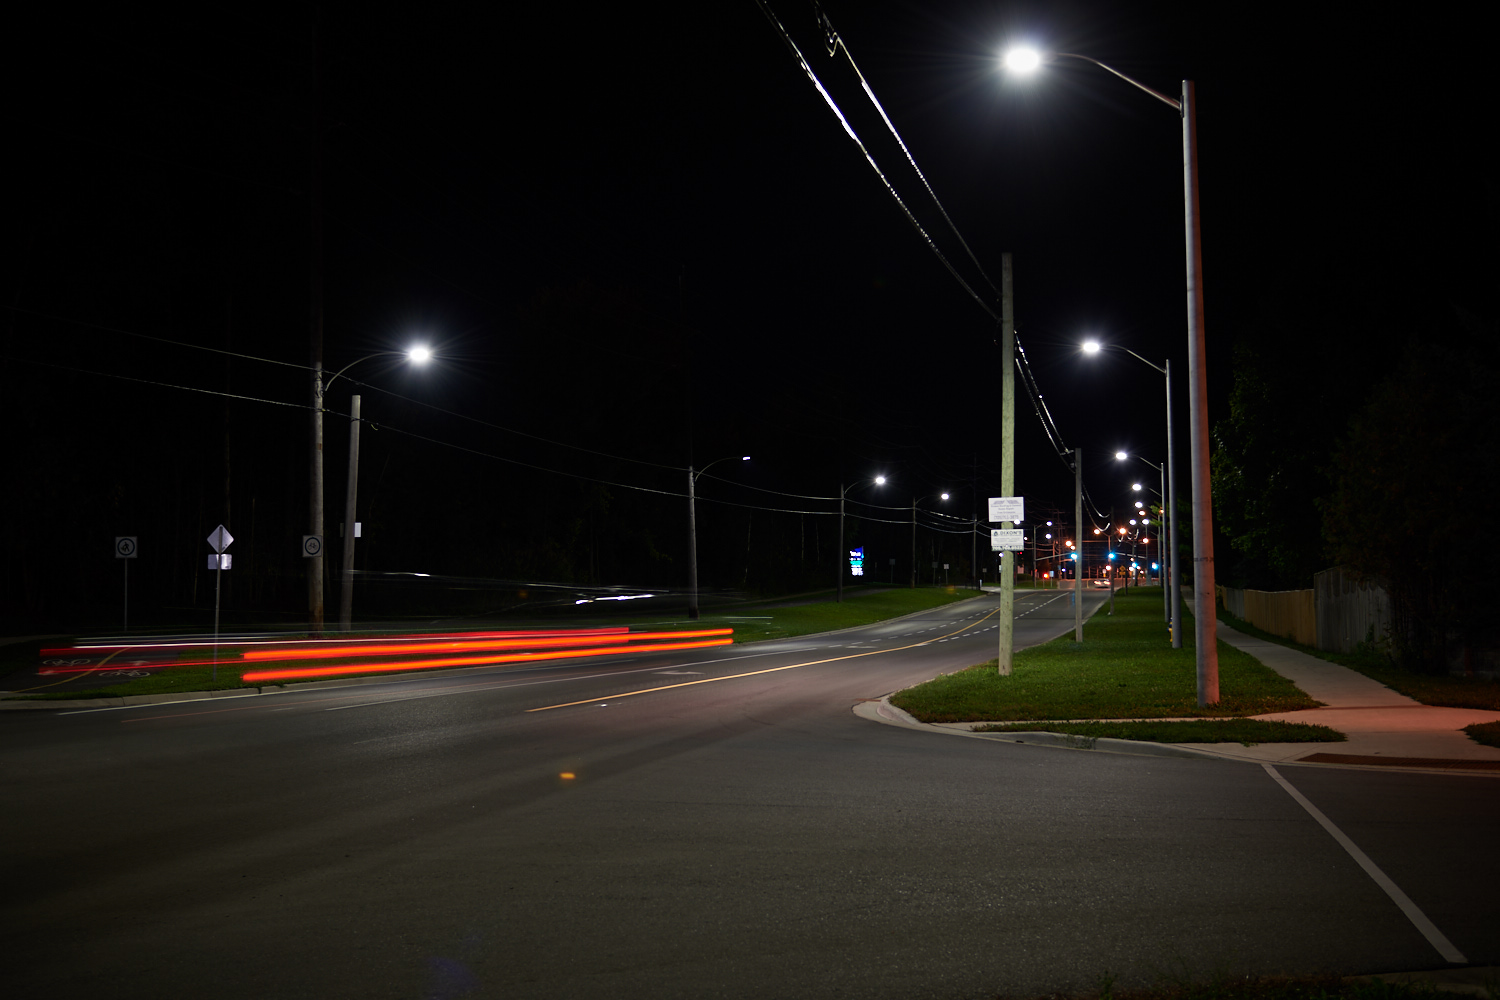 Most of the lights on Brealey have already been converted. Photo: Evan Holt